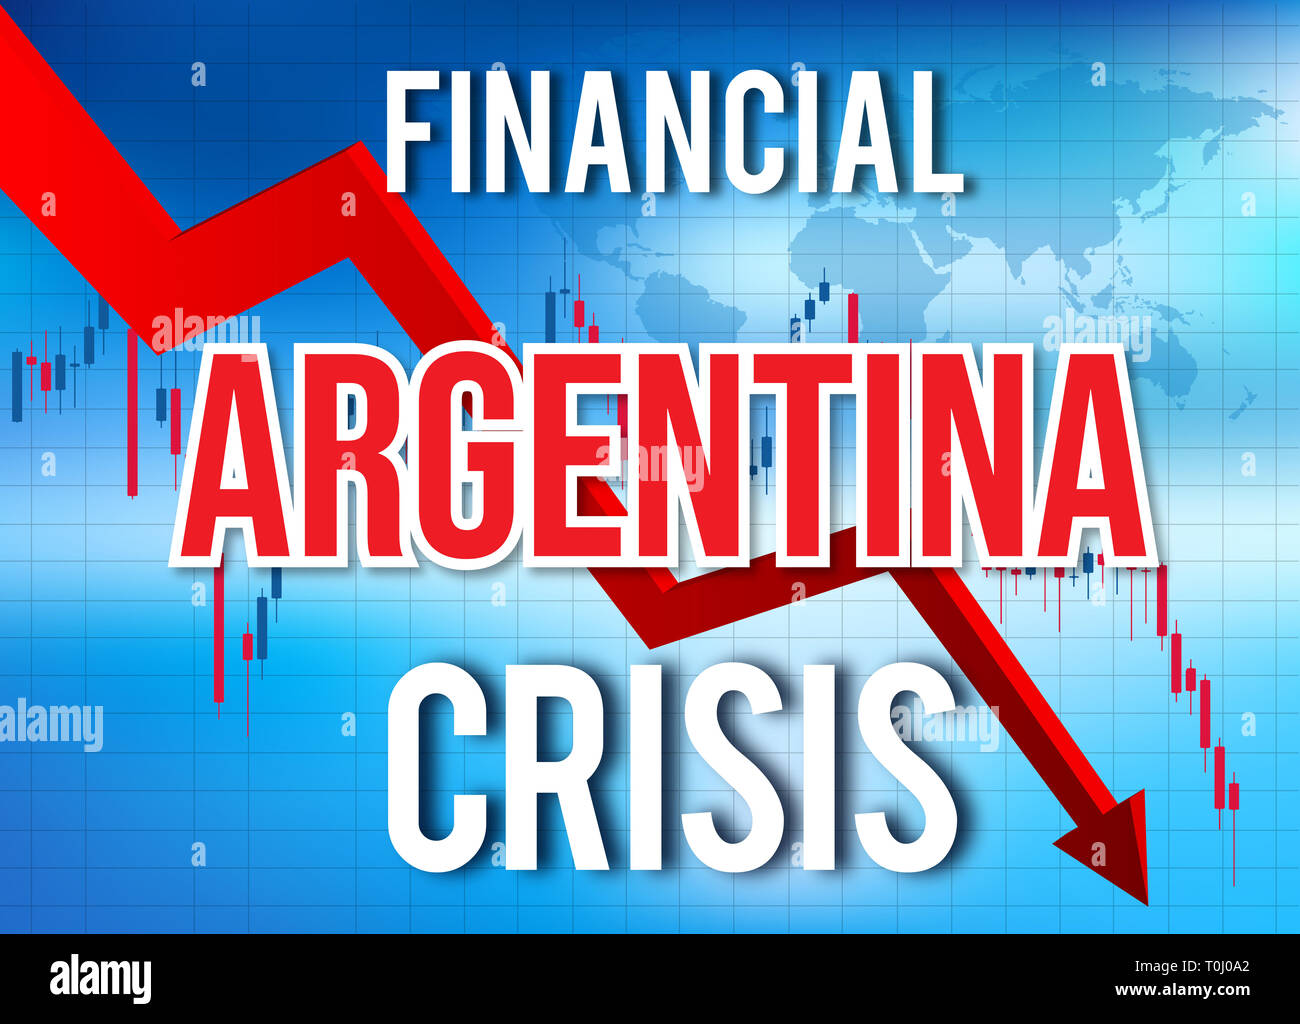 Argentina Financial Crisis Economic Collapse Market Crash Global Meltdown Illustration. Stock Photo